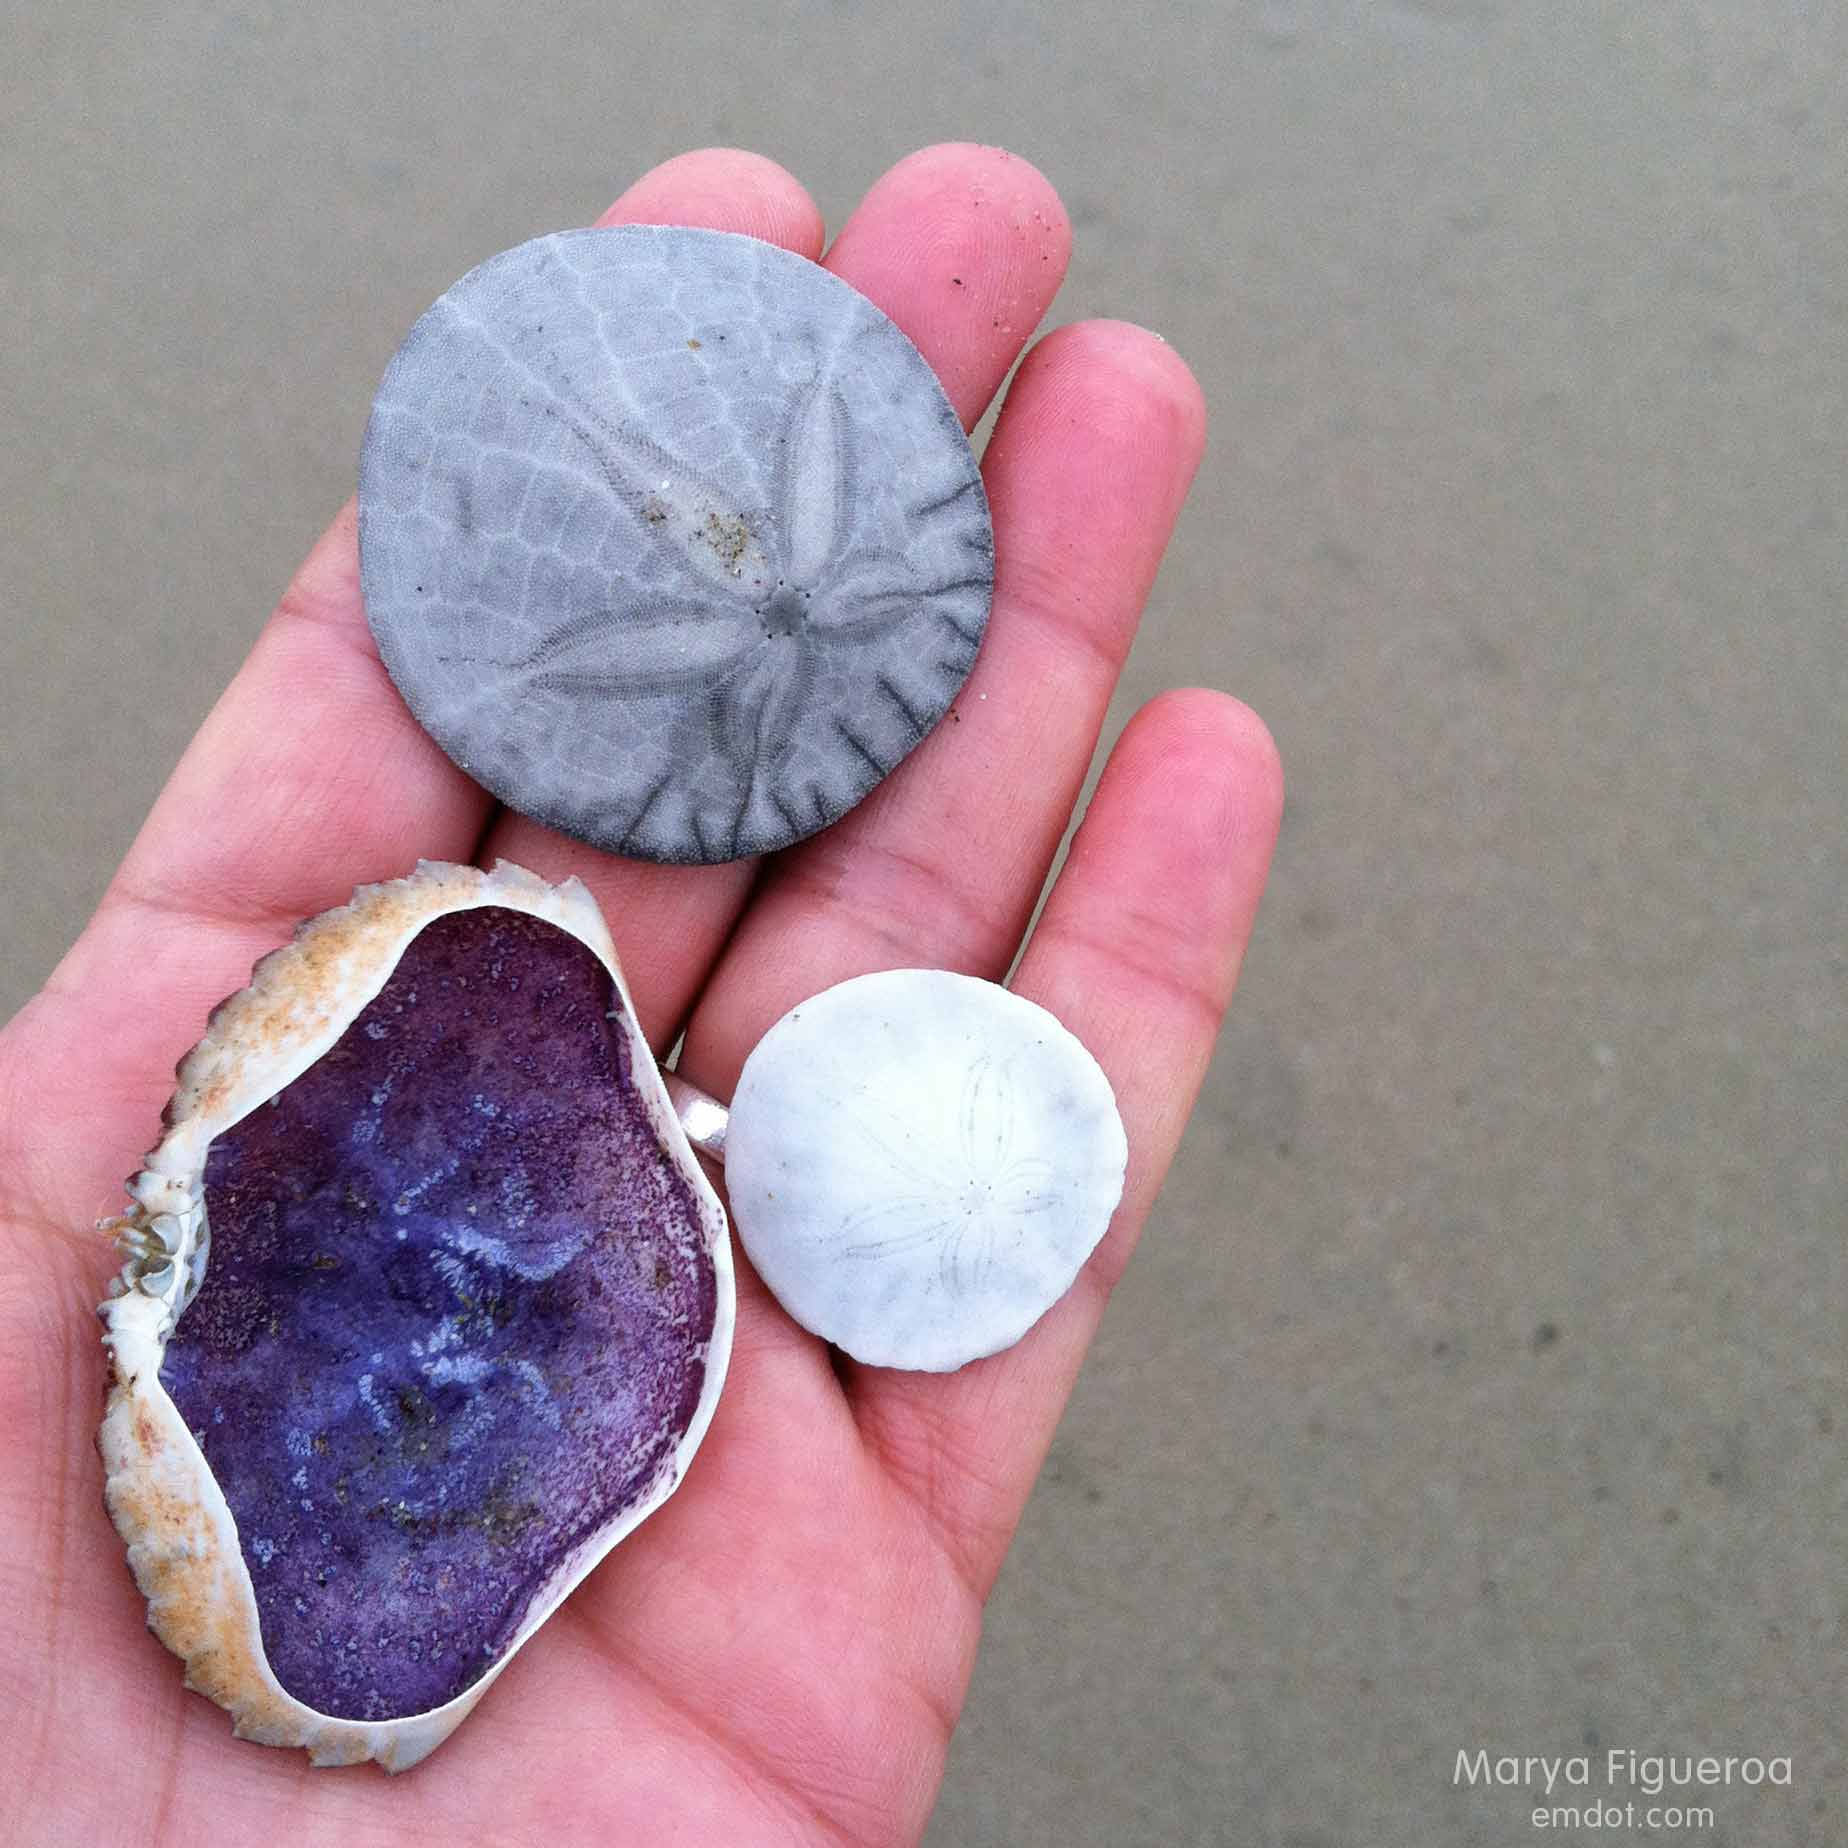 Crab shell and two sand dollars